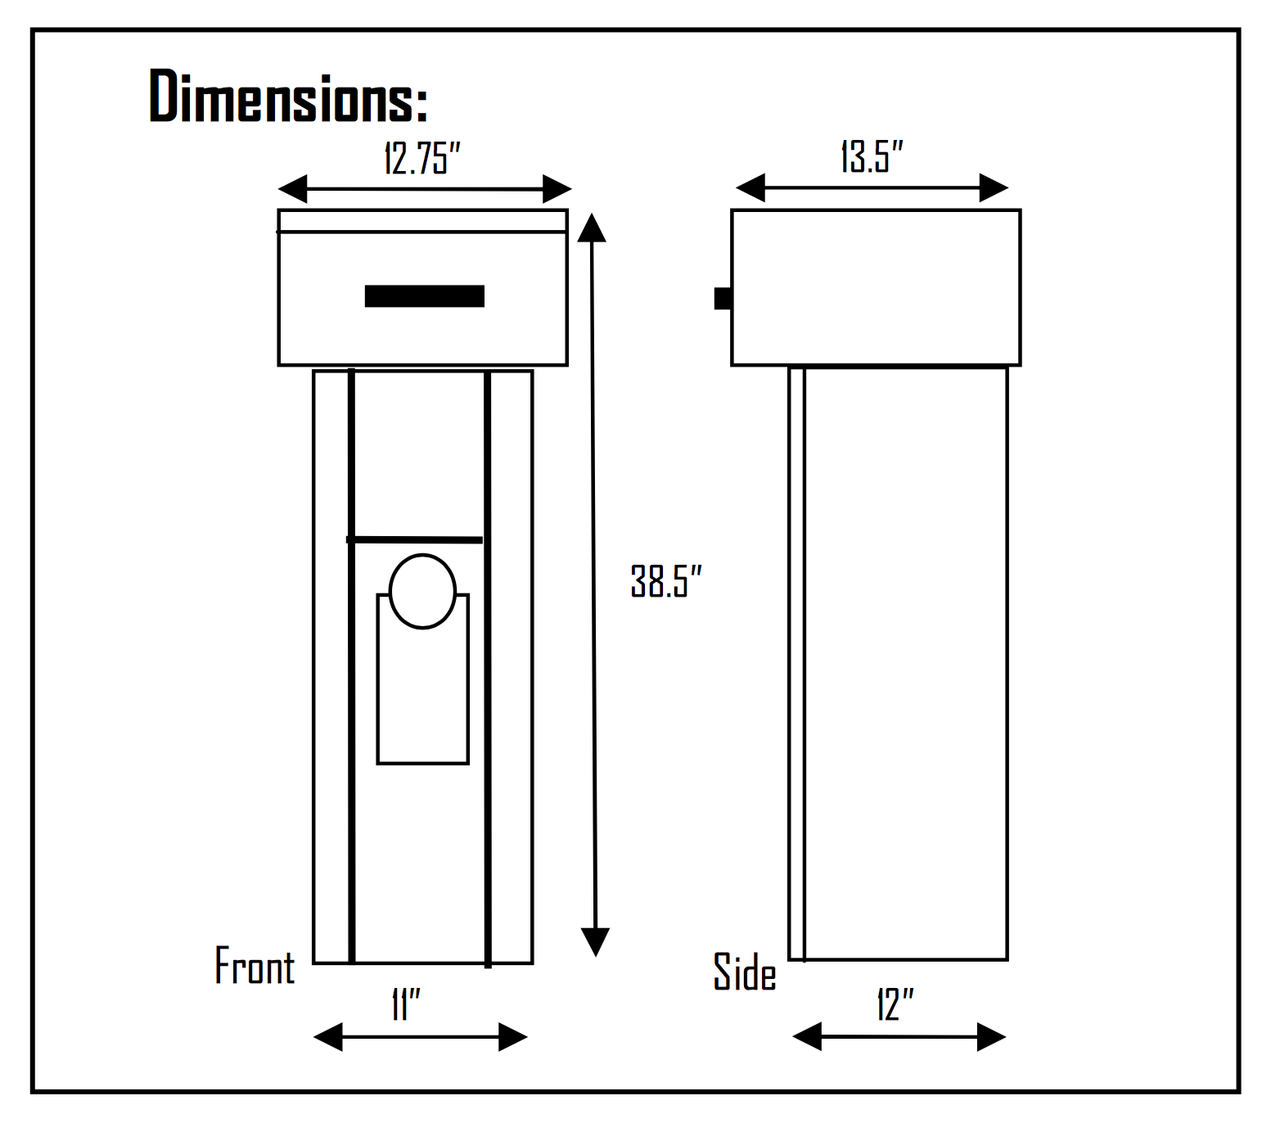 Free Standing High Security Key or Payment Drop Box dimensions